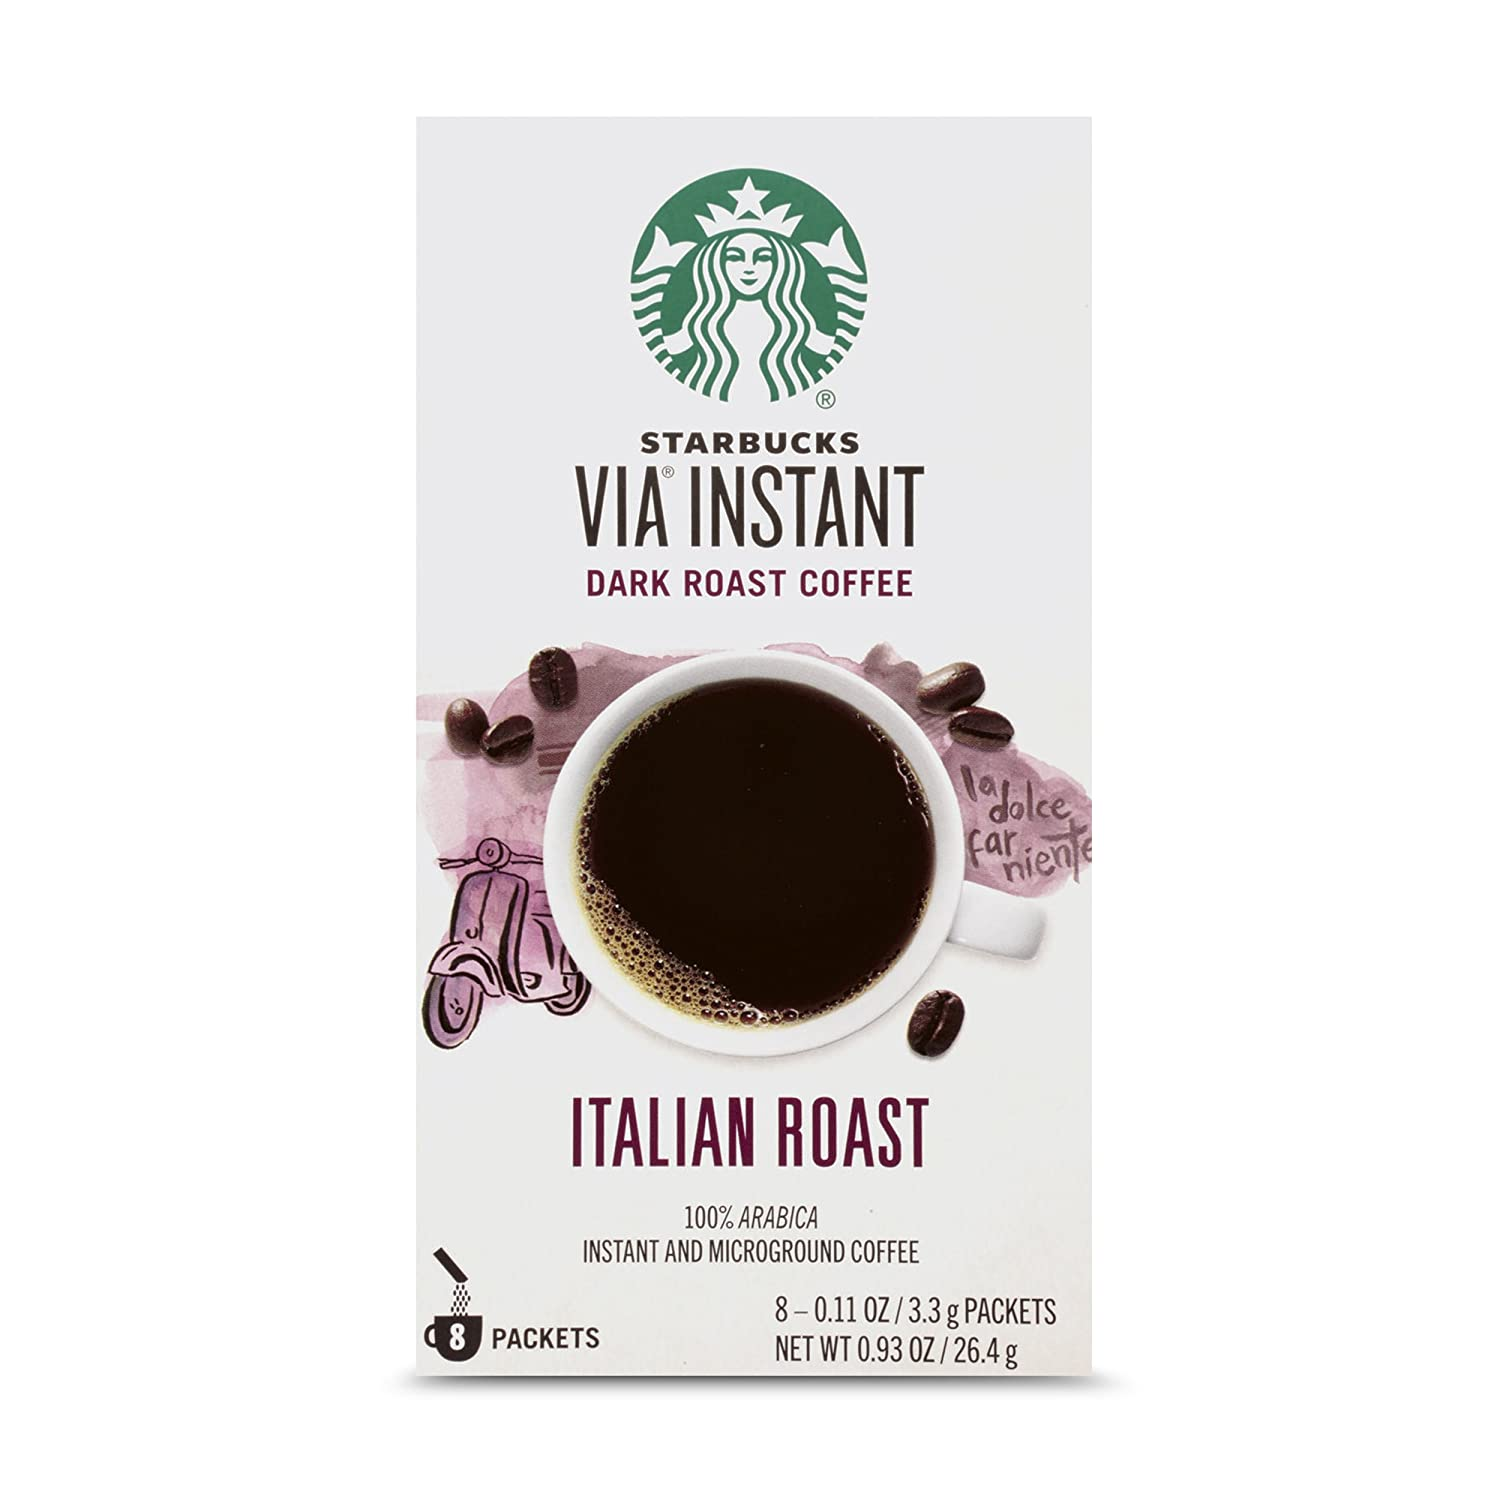 Starbucks VIA Instant Caffè Mocha Latte (1 box of 5 packets) Starbucks Coffee 011030929